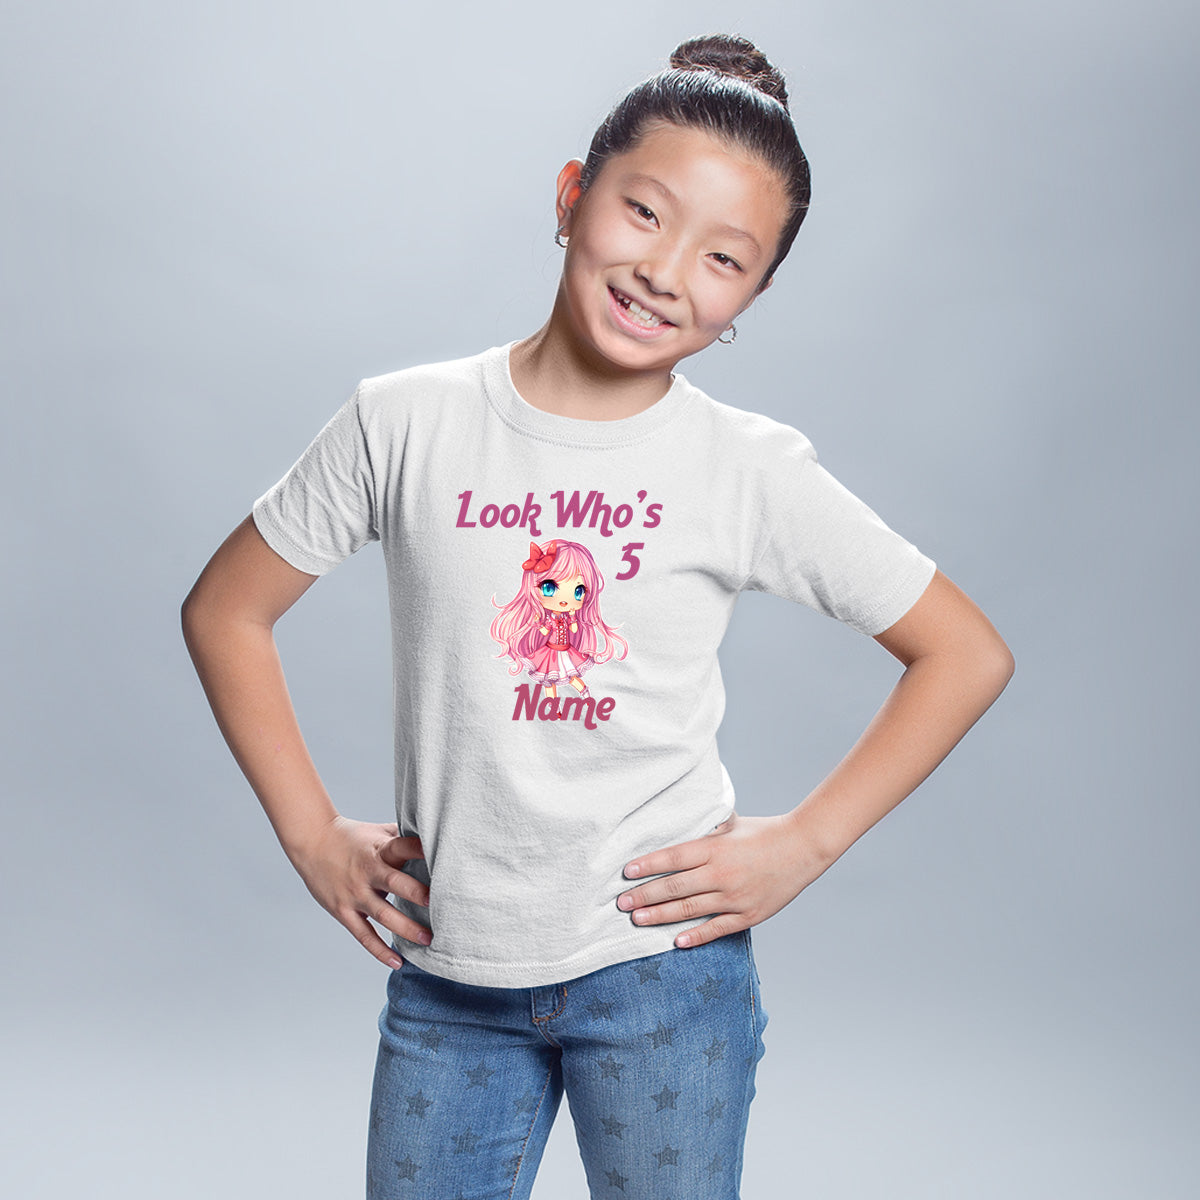 Sprinklecart Look Who's 5 Printed Cute Girl Birthday T Shirt | Customized 5th Birthday Wear